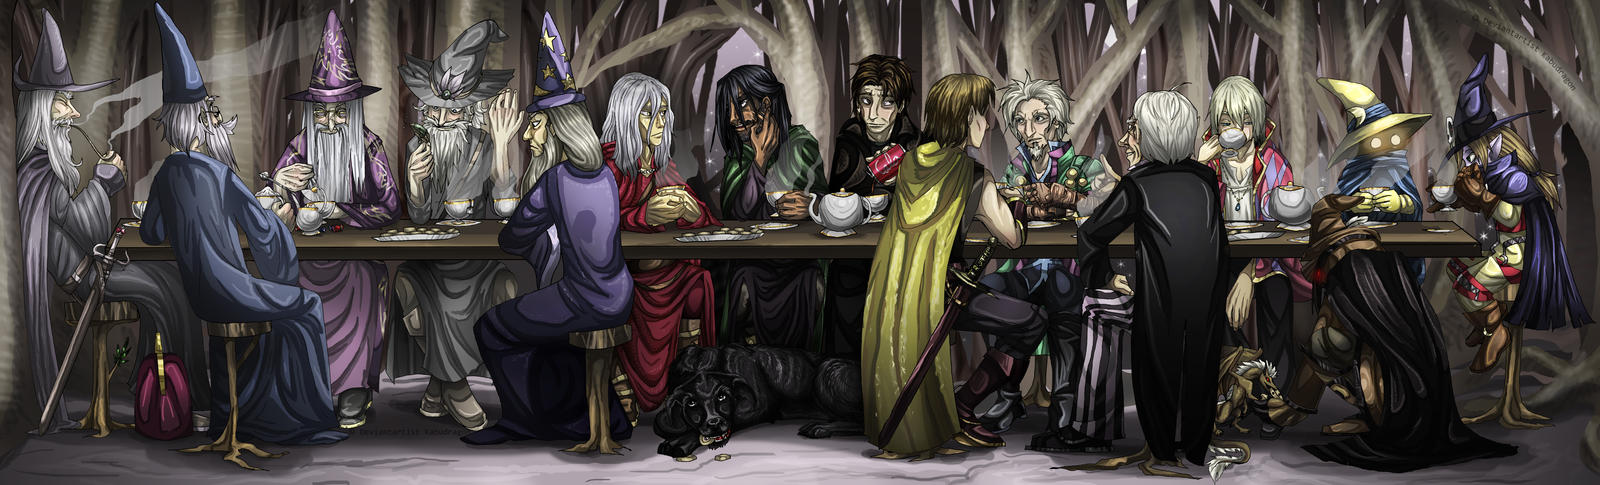 A Wizard Tea Party by Kabudragon